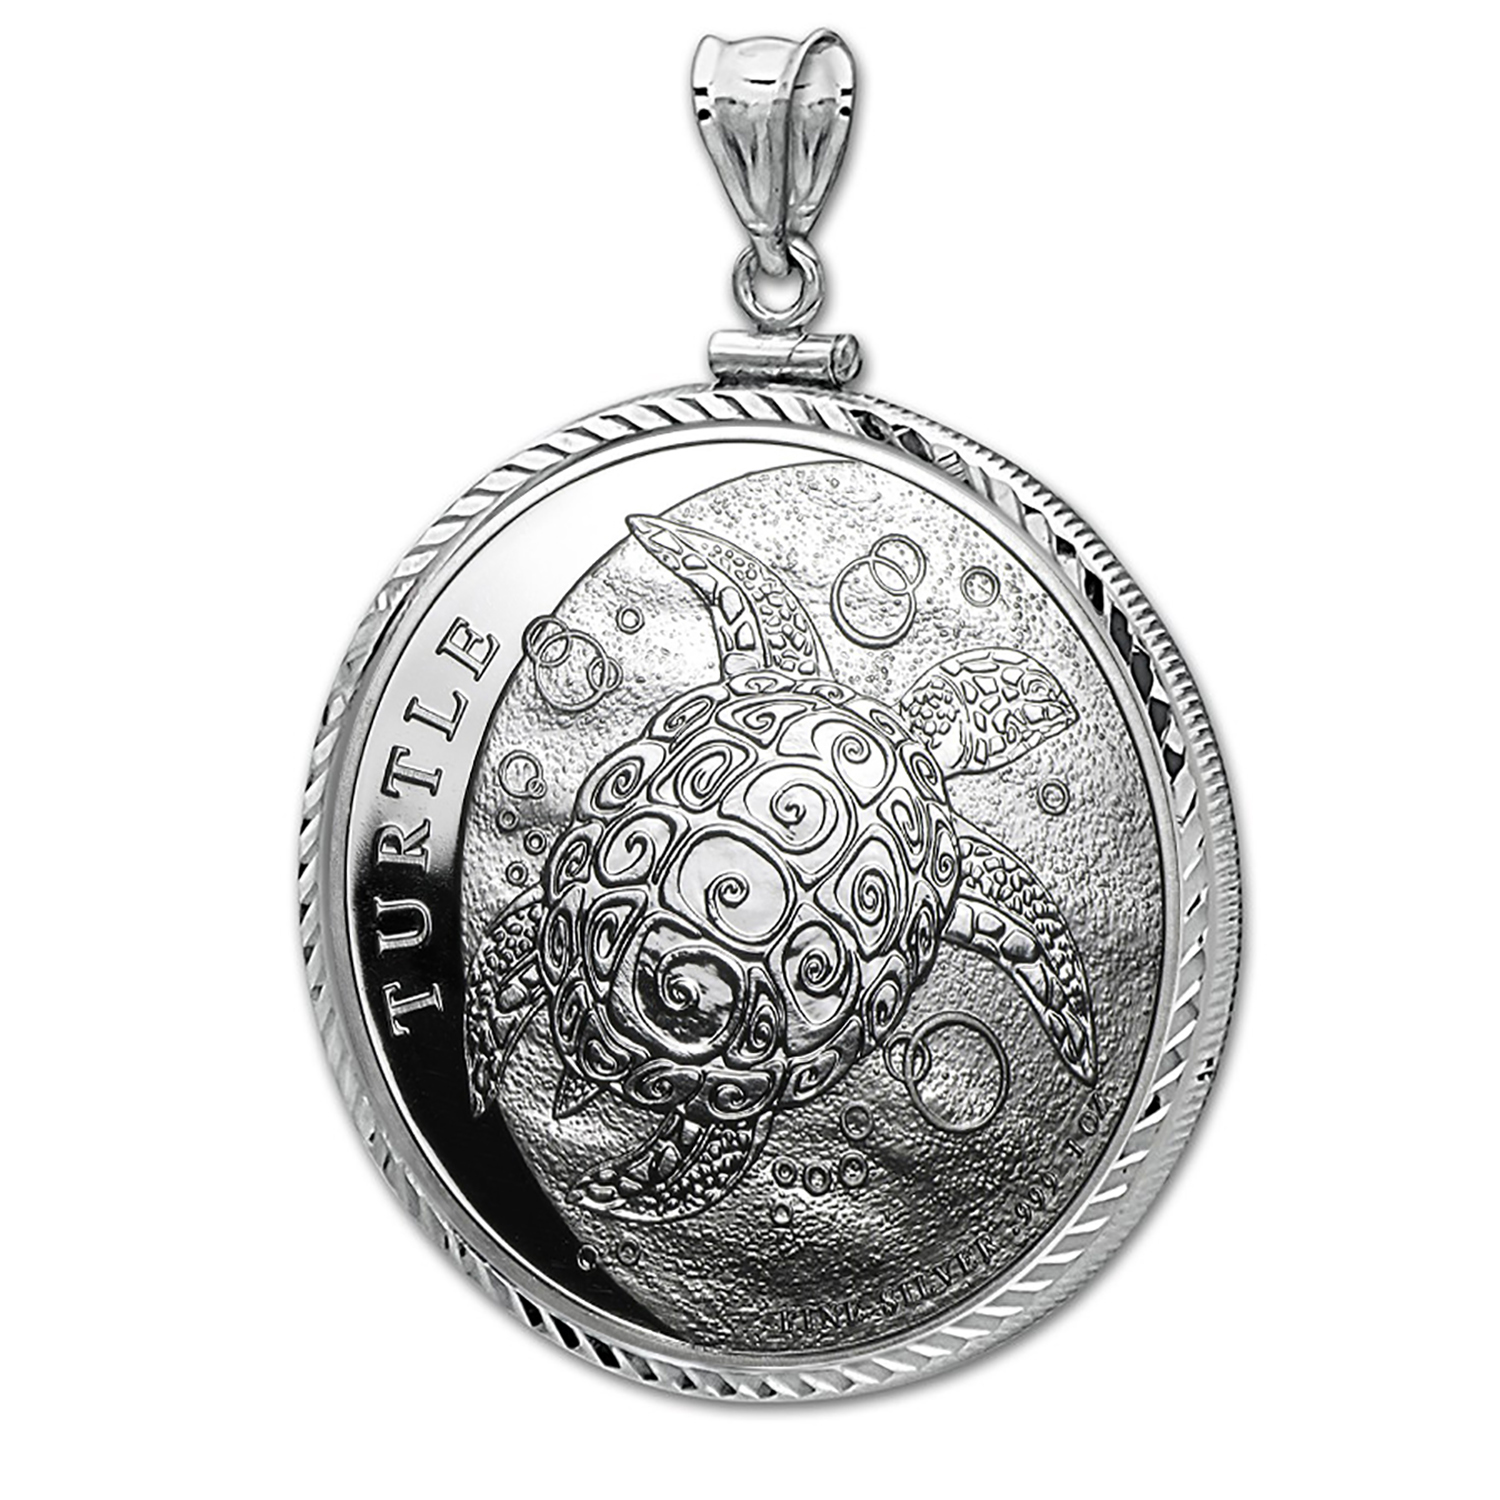 2016 Niue 1 oz Silver $2 Hawksbill Turtle Pendant (Diamond-Cut)